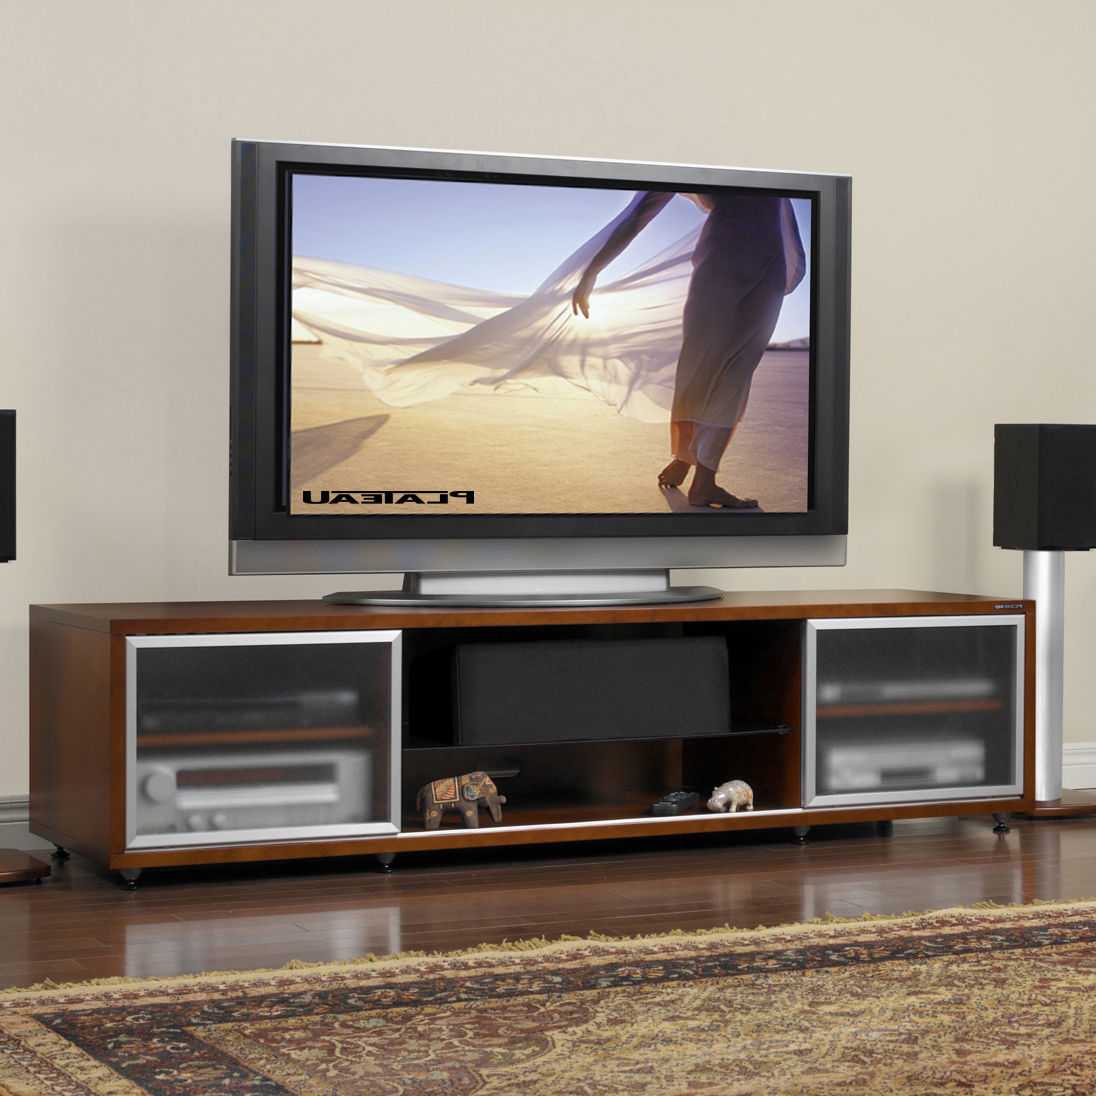 Tv Stands With Sliding Glass Doors – Sliding Door Ideas In 2018 Wooden Tv Stands With Glass Doors (View 14 of 20)